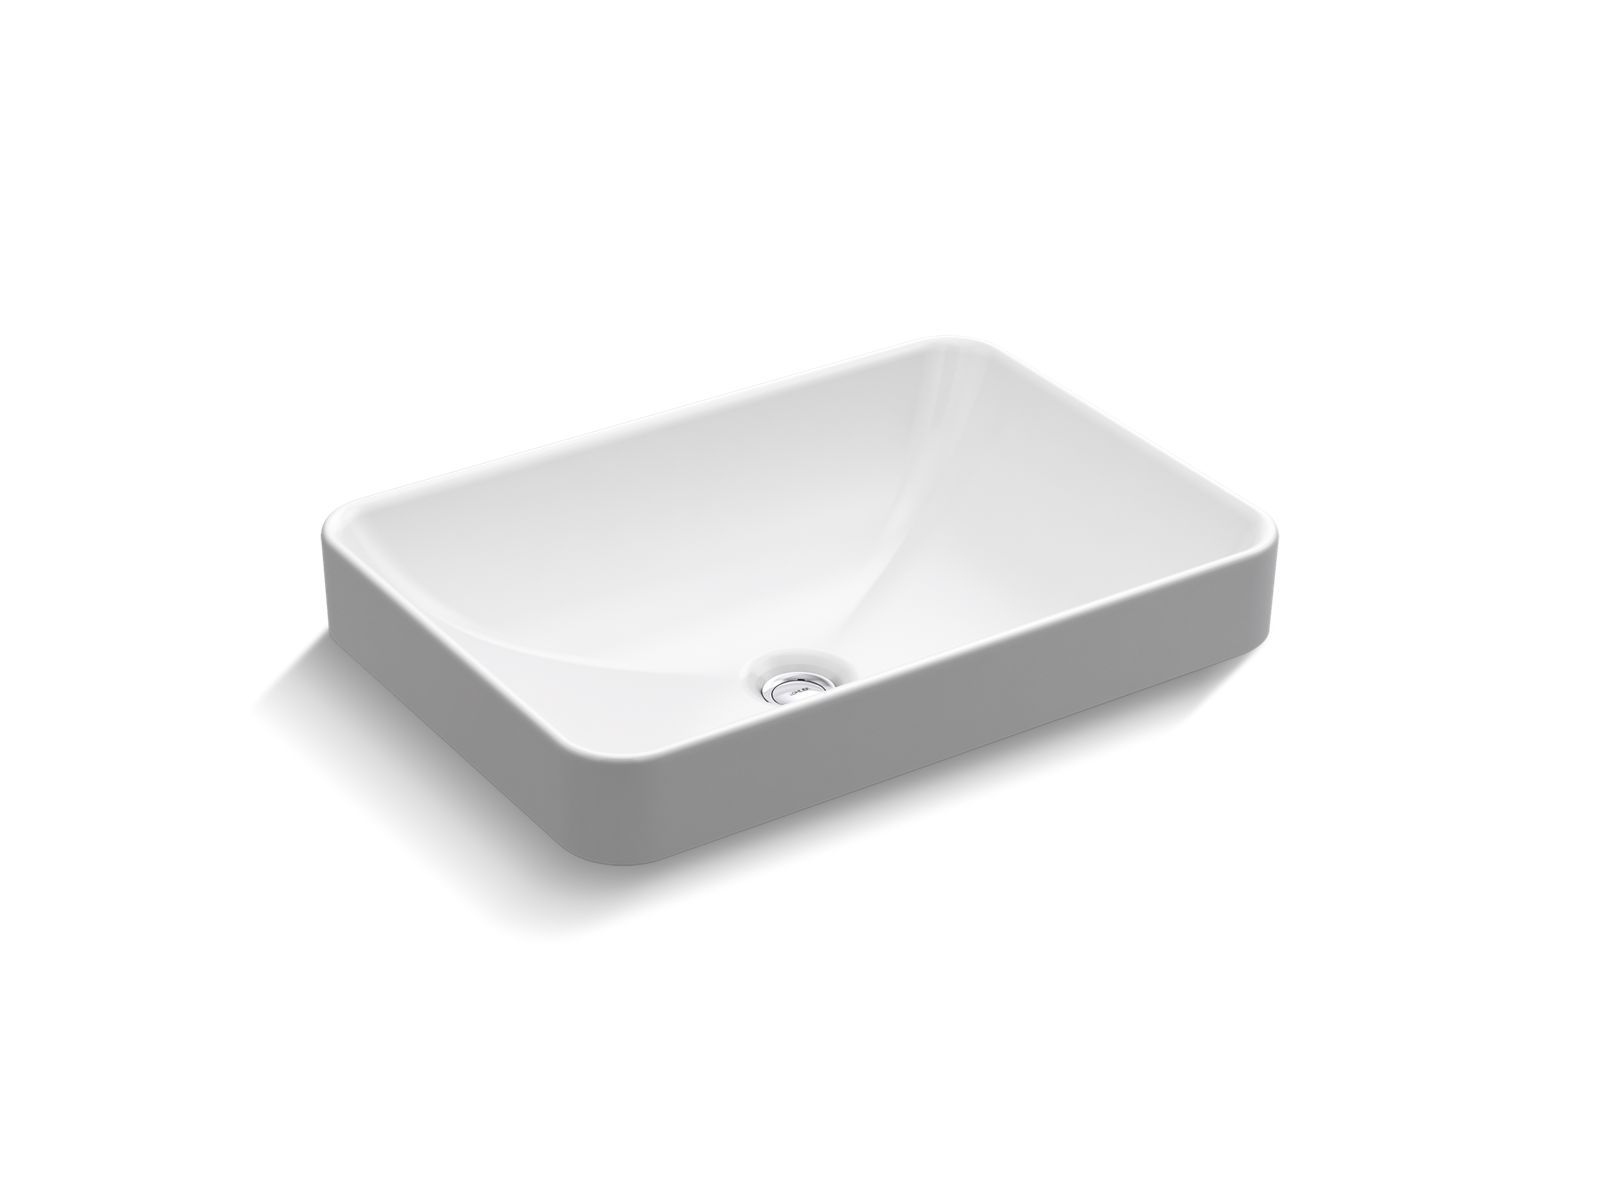 Sleek And Contemporary The K 5373 Vessel Style Sink Features A